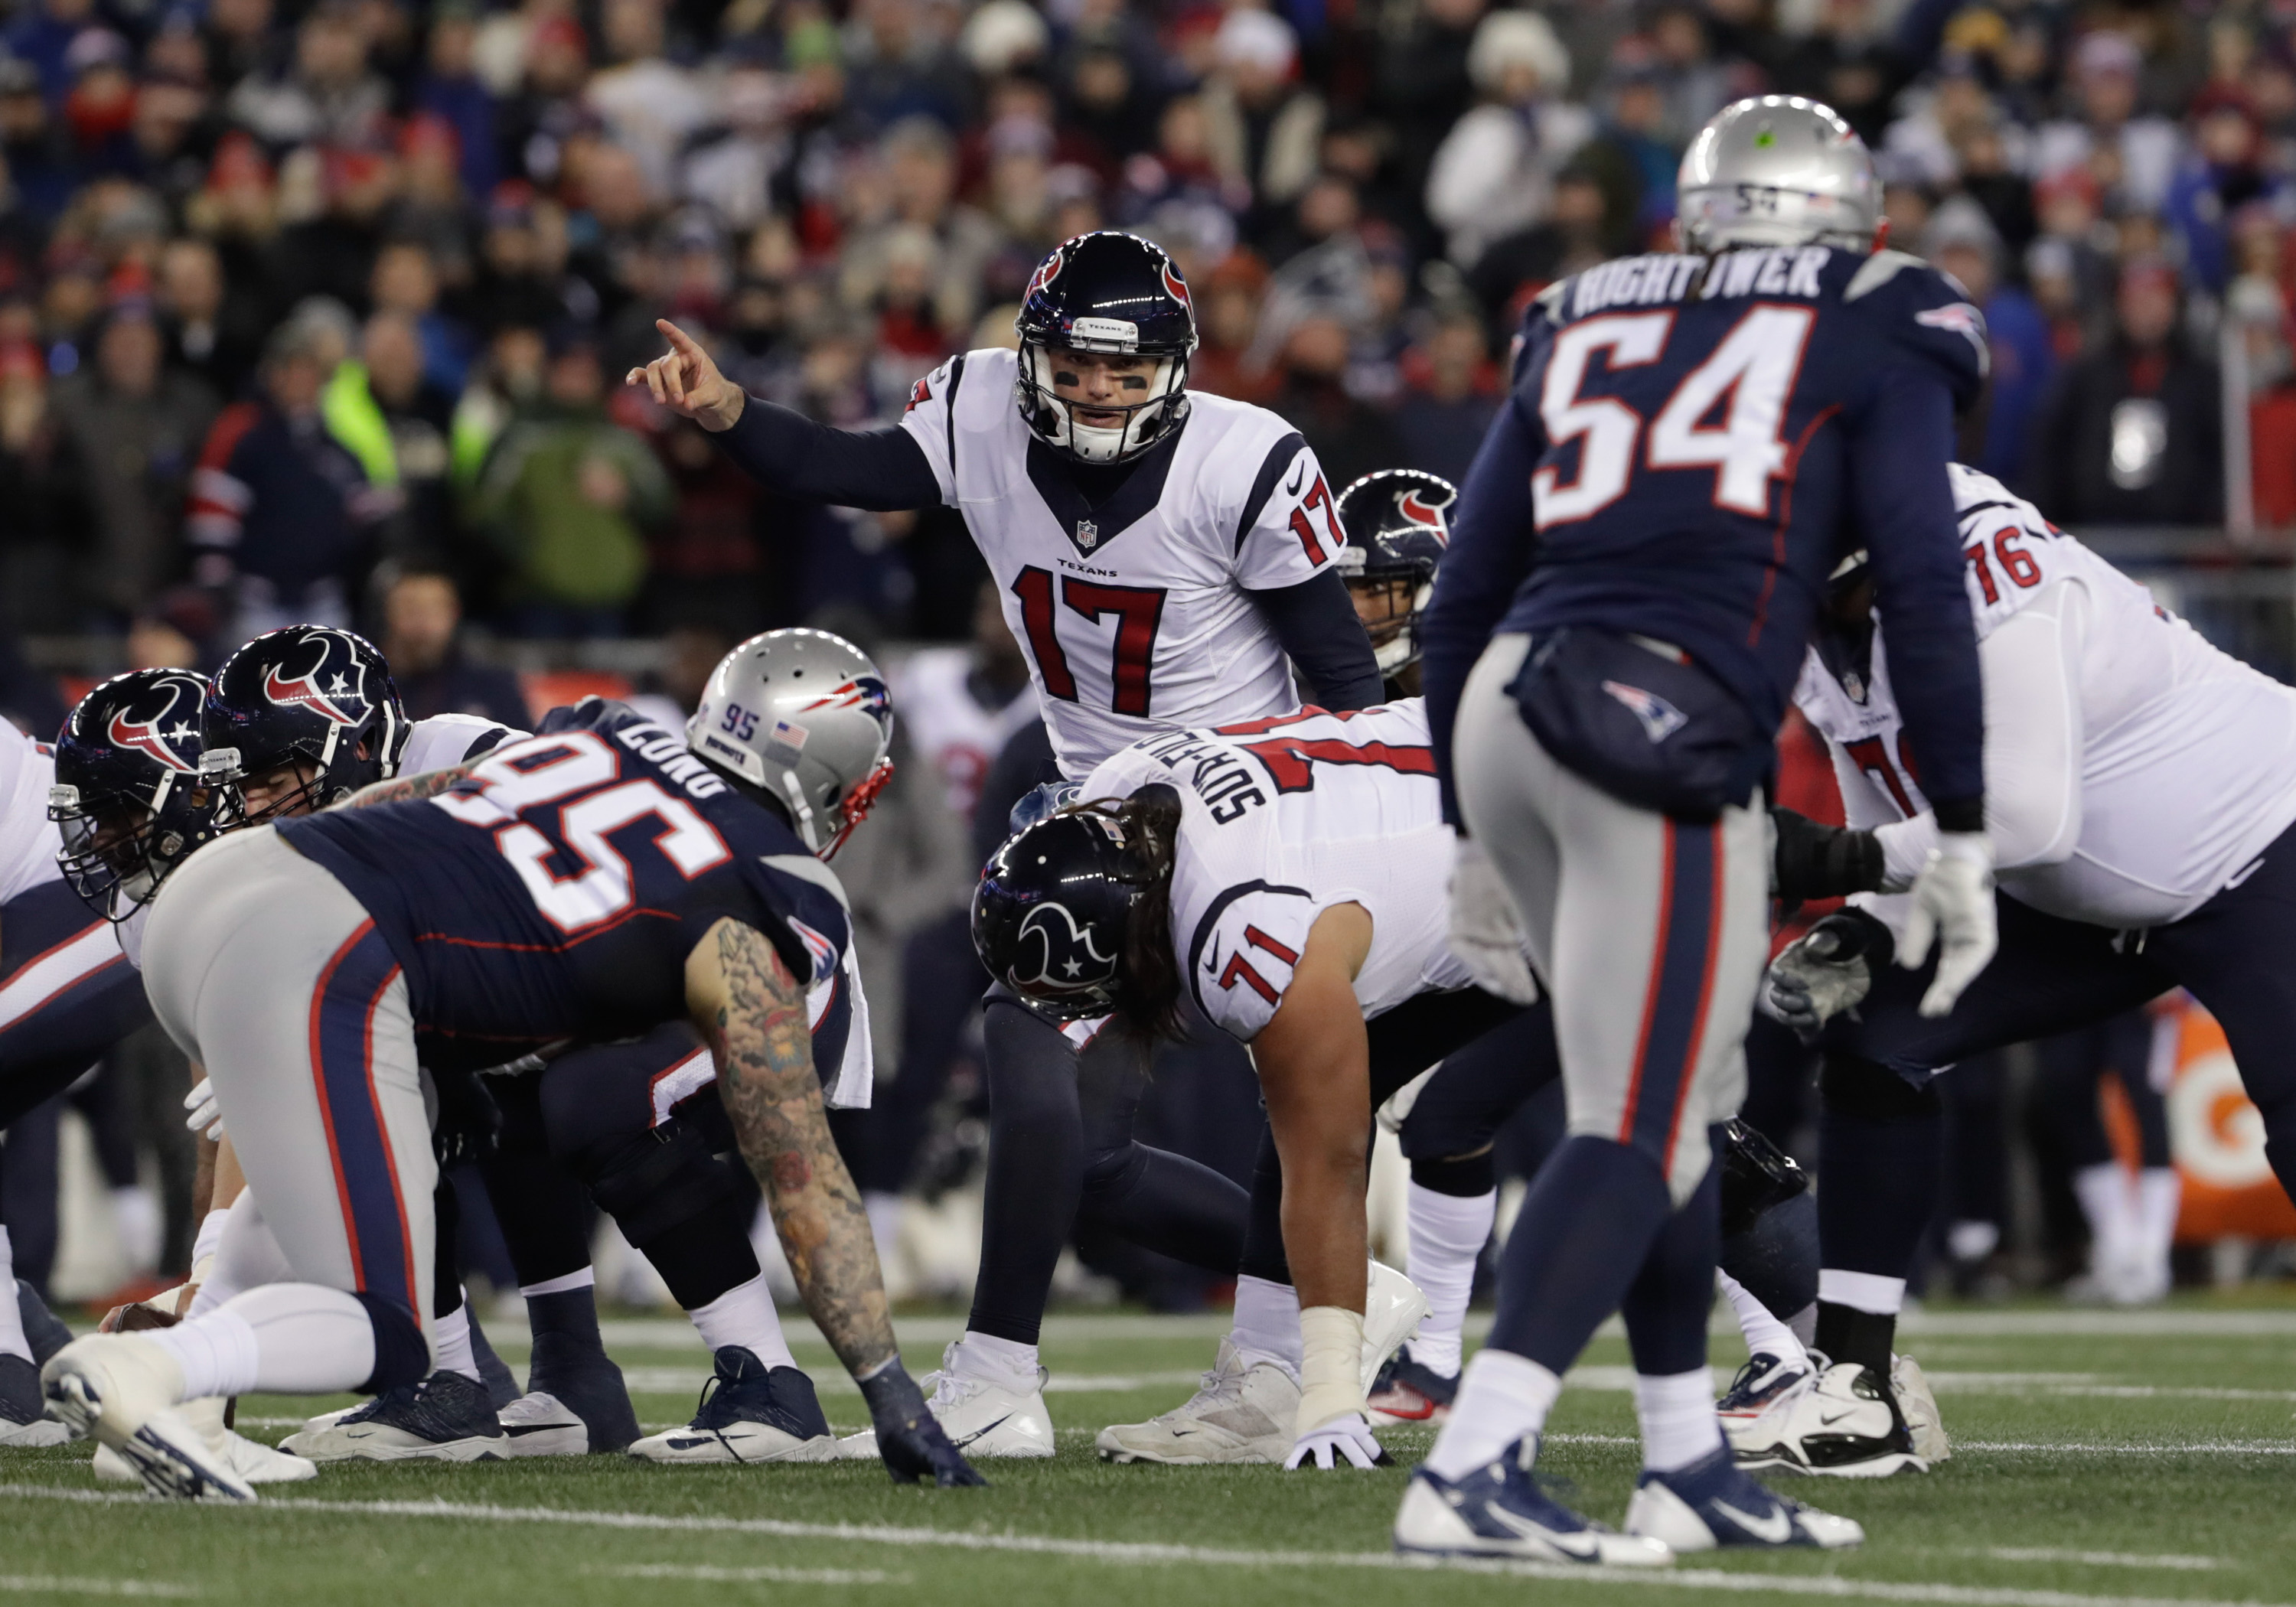 9824899-nfl-afc-divisional-houston-texans-at-new-england-patriots